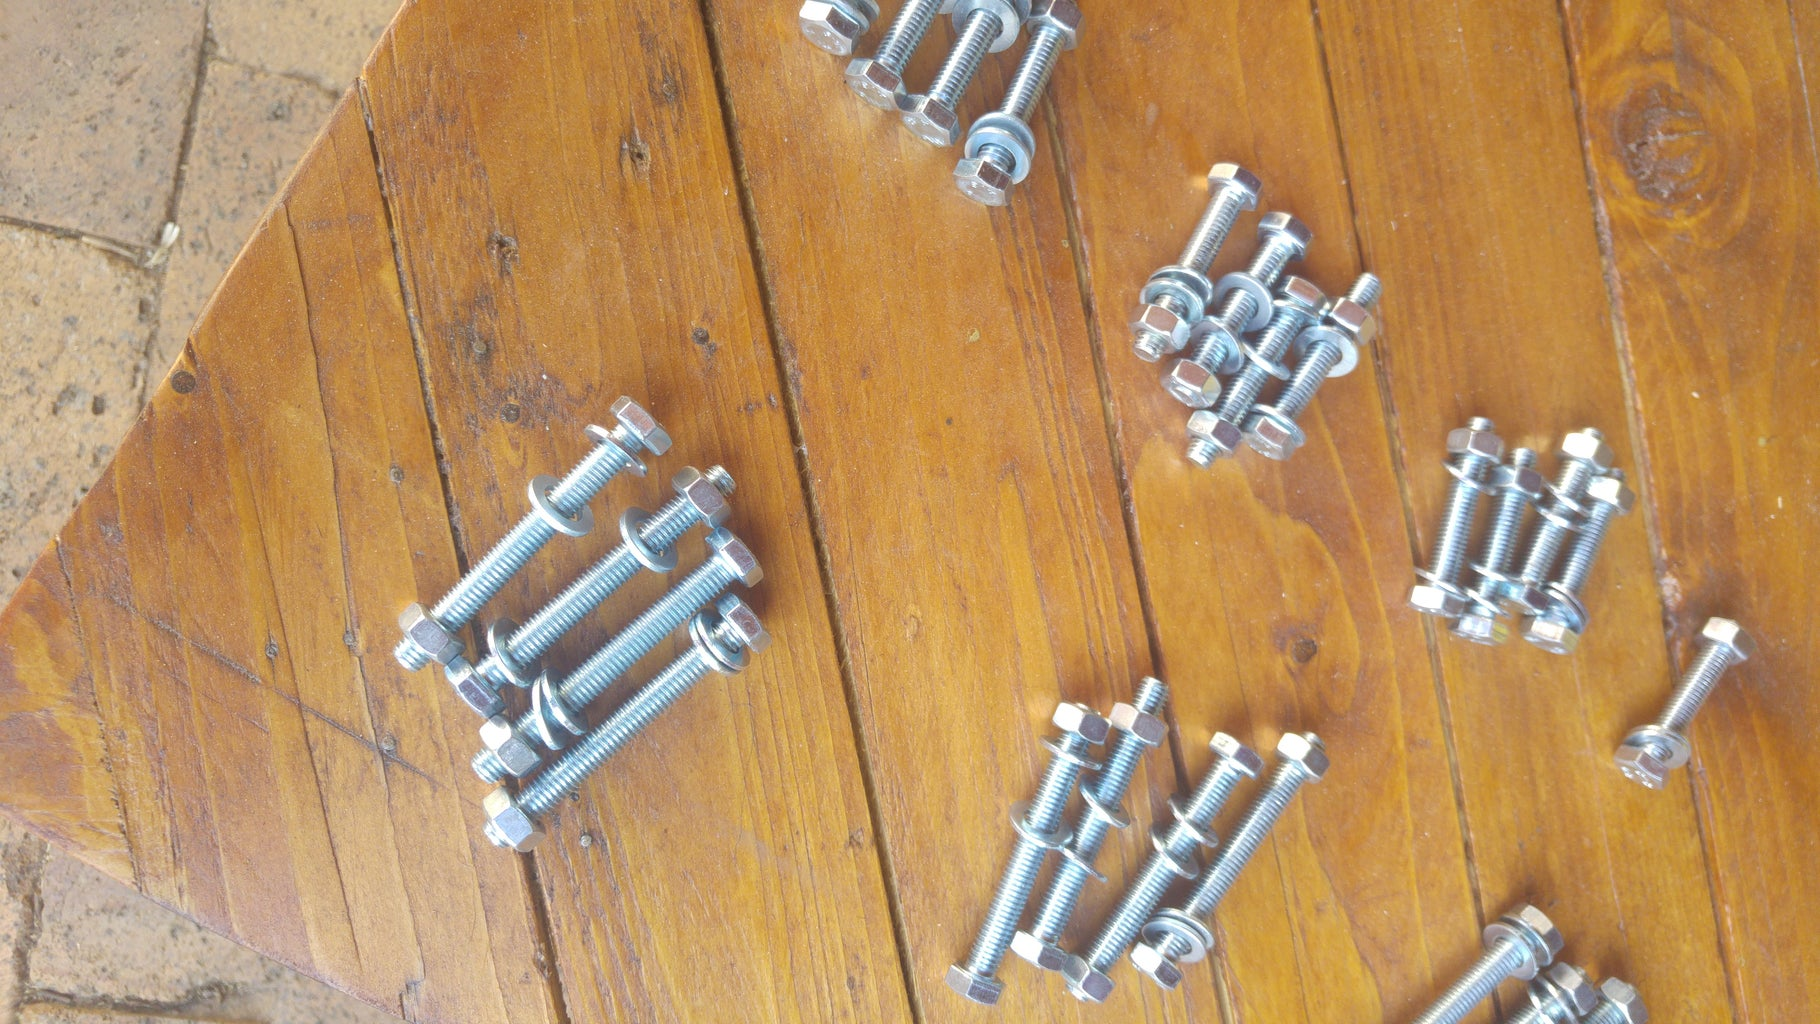 Nuts, Bolts, Hangers and Feet